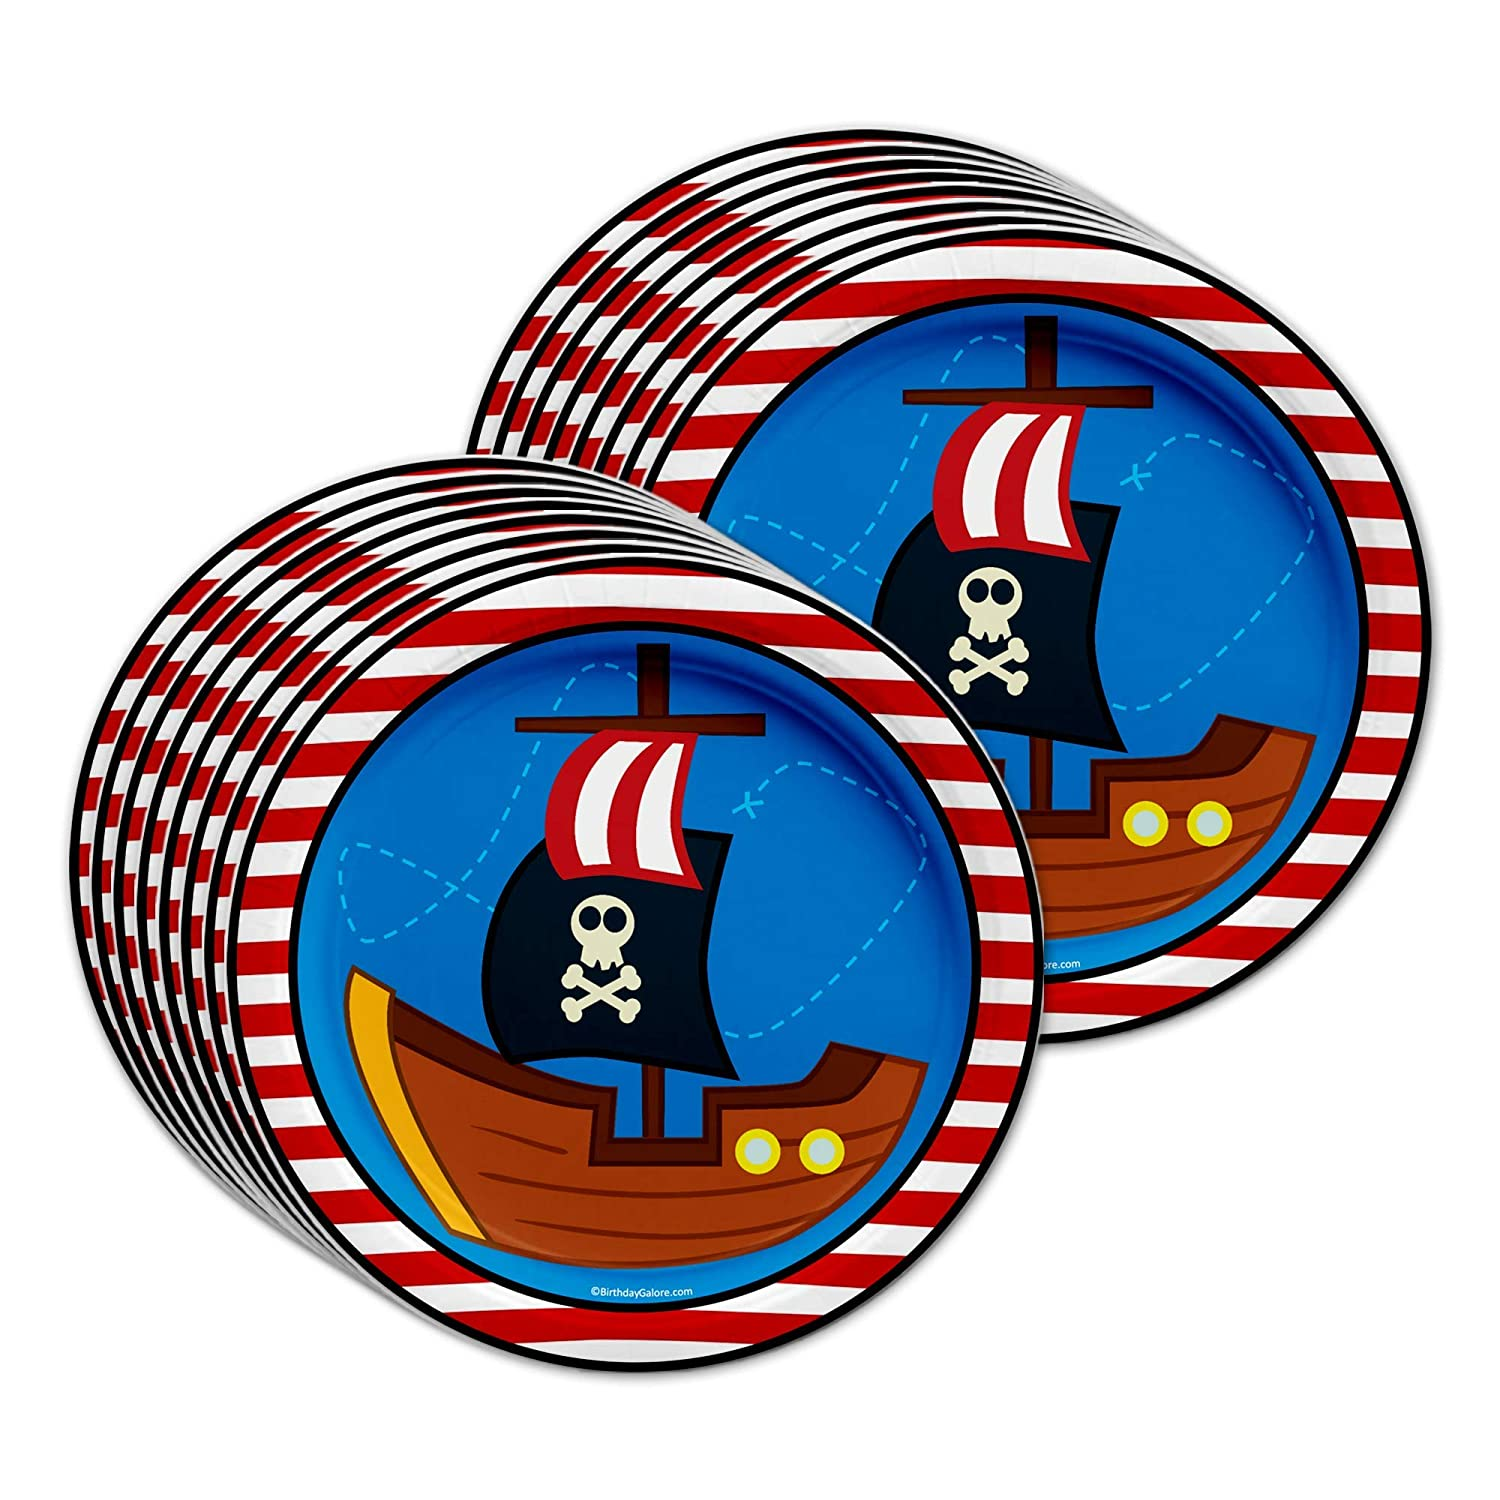 Pirate Ship Birthday Party Supplies Set Plates Napkins Cups Tableware Kit for 16 by Birthday Galore AX-AY-ABHI-105668